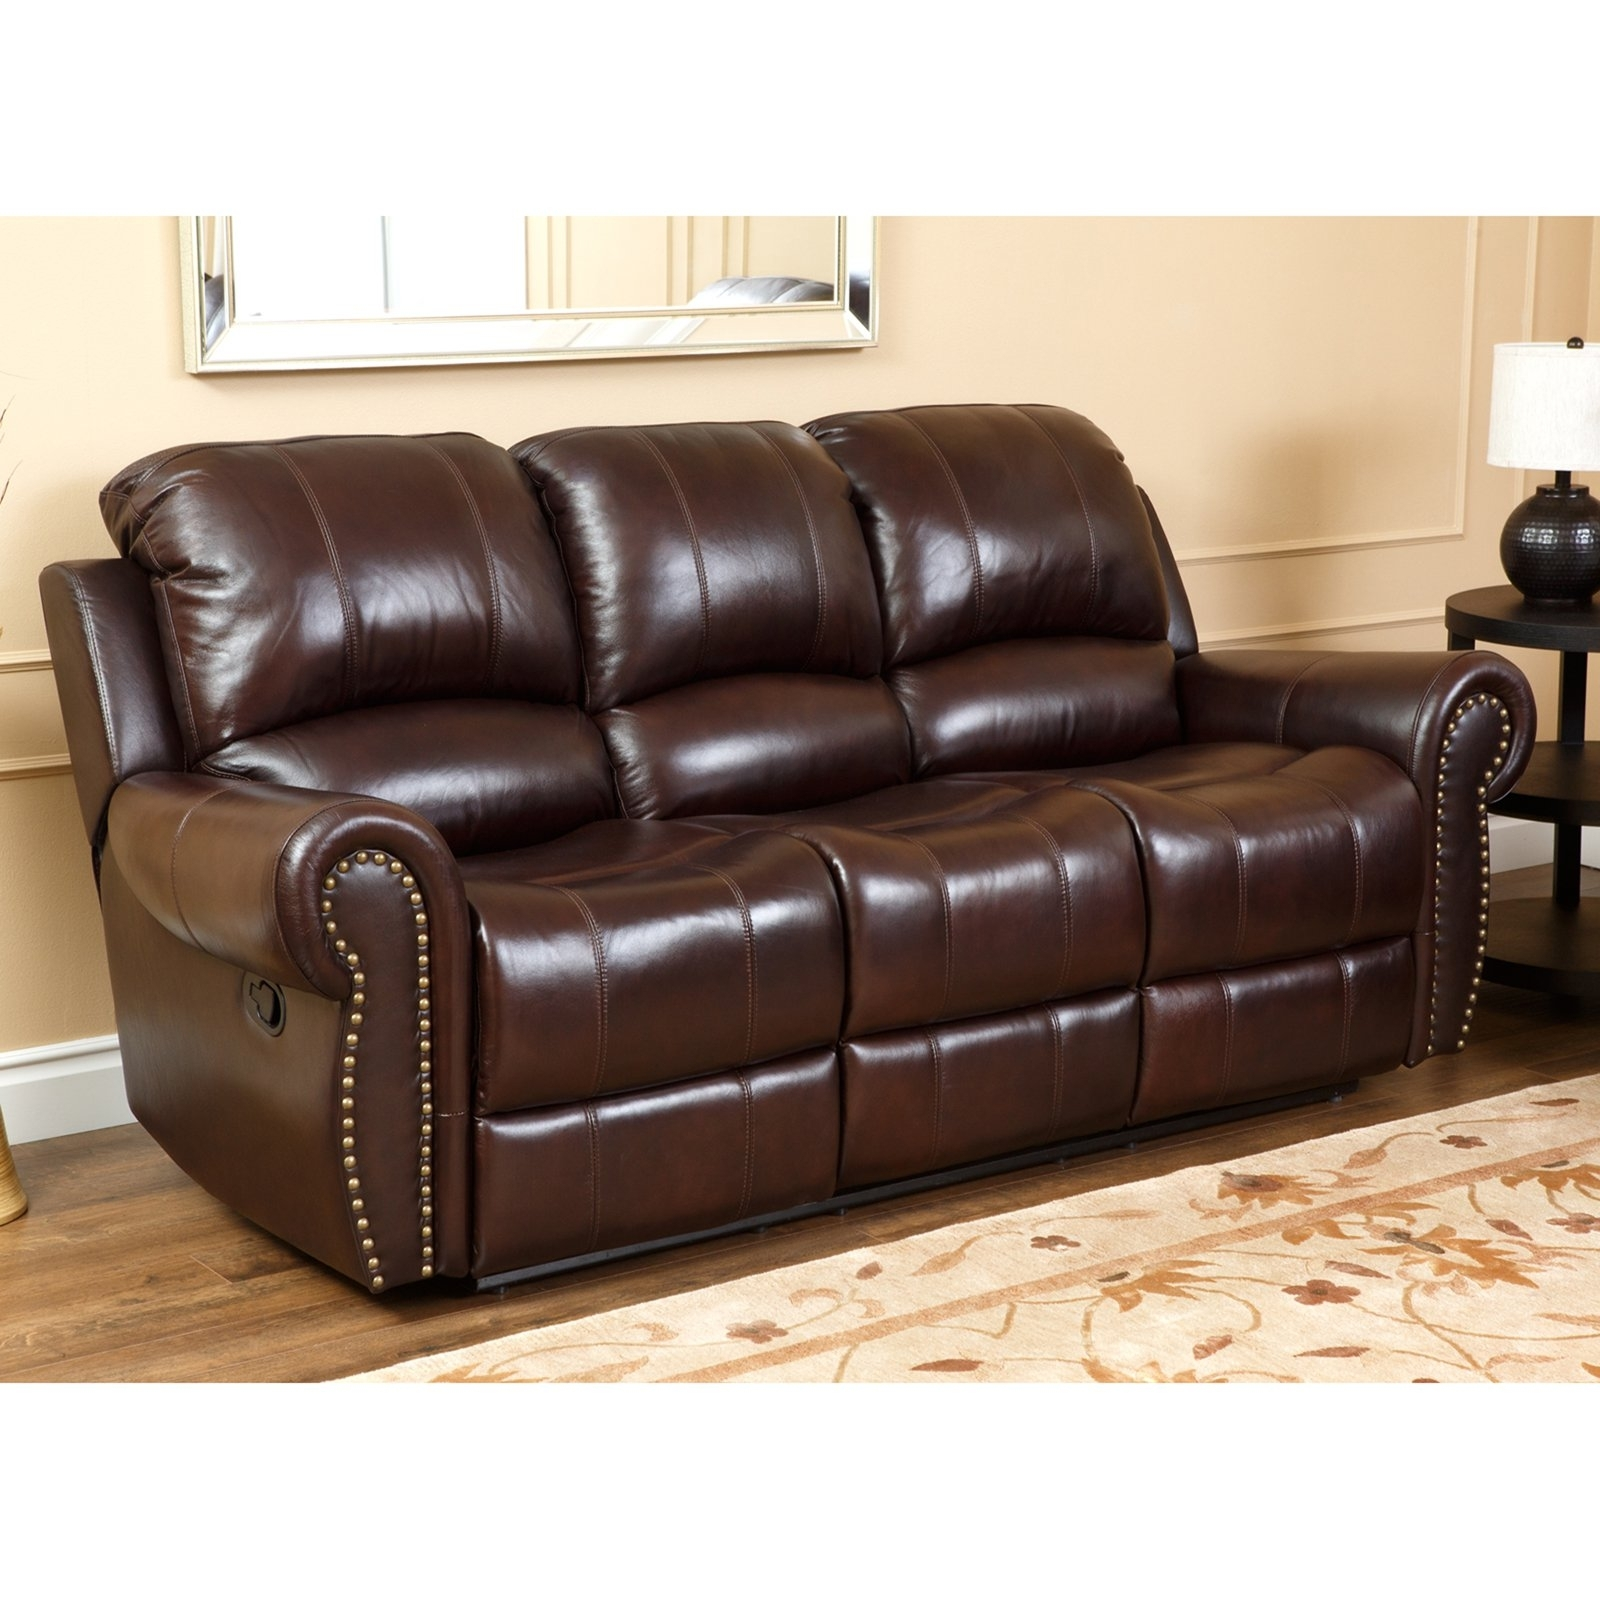 Furniture : Claudia Ii Leather Sofa And Loveseat Macys Leather Sofa pertaining to Sectional Sofas at Barrie (Image 10 of 15)